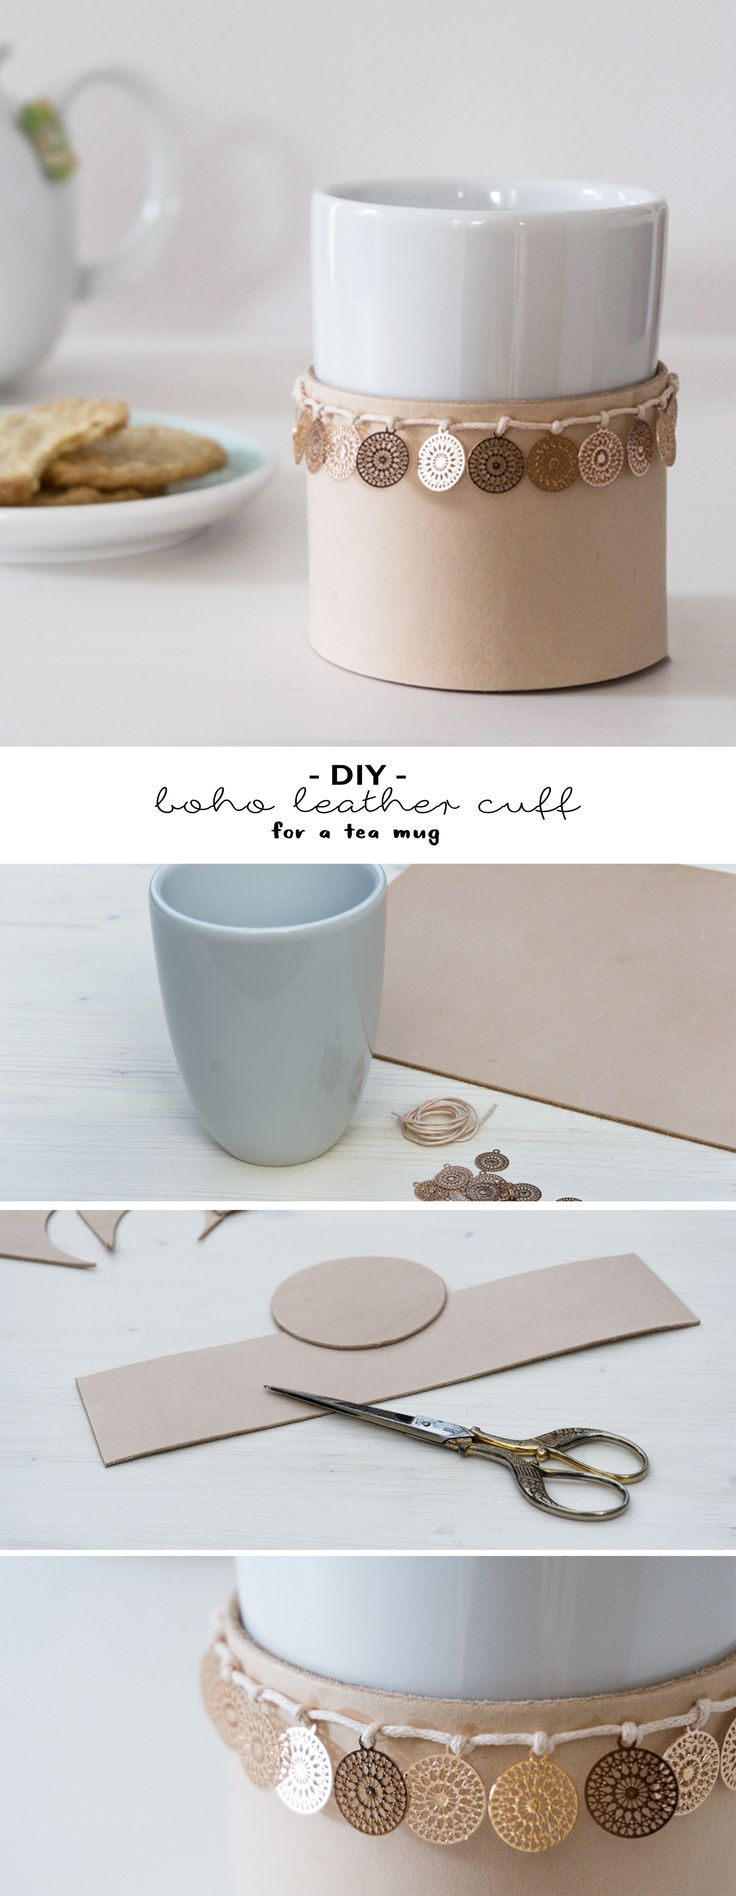 452 best DIY with leather images on Pinterest | Leather, DIY and ...